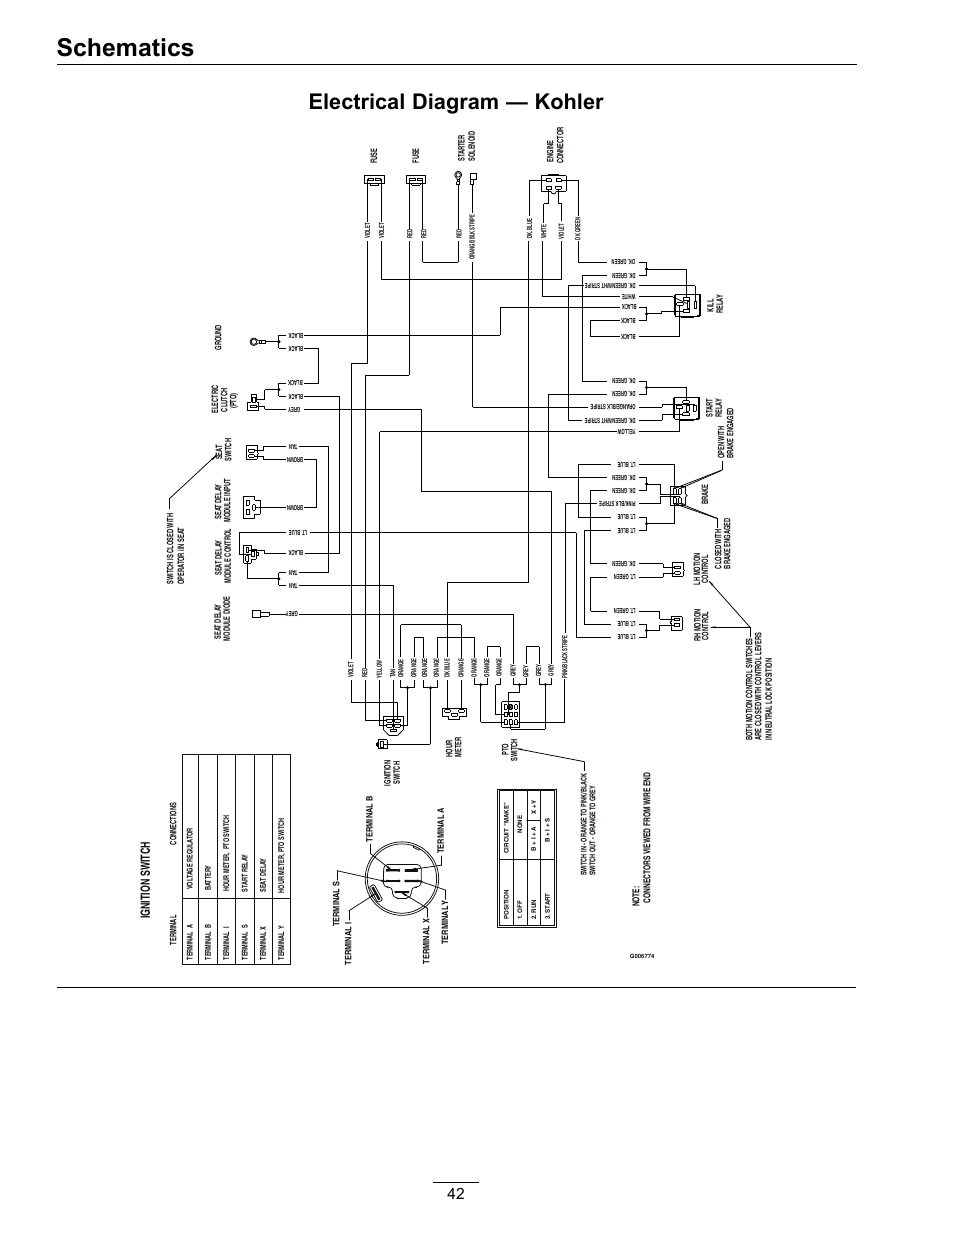 Kohler Ignition Switch Wiring Diagram | Manual E-Books - Kohler Ignition Switch Wiring Diagram